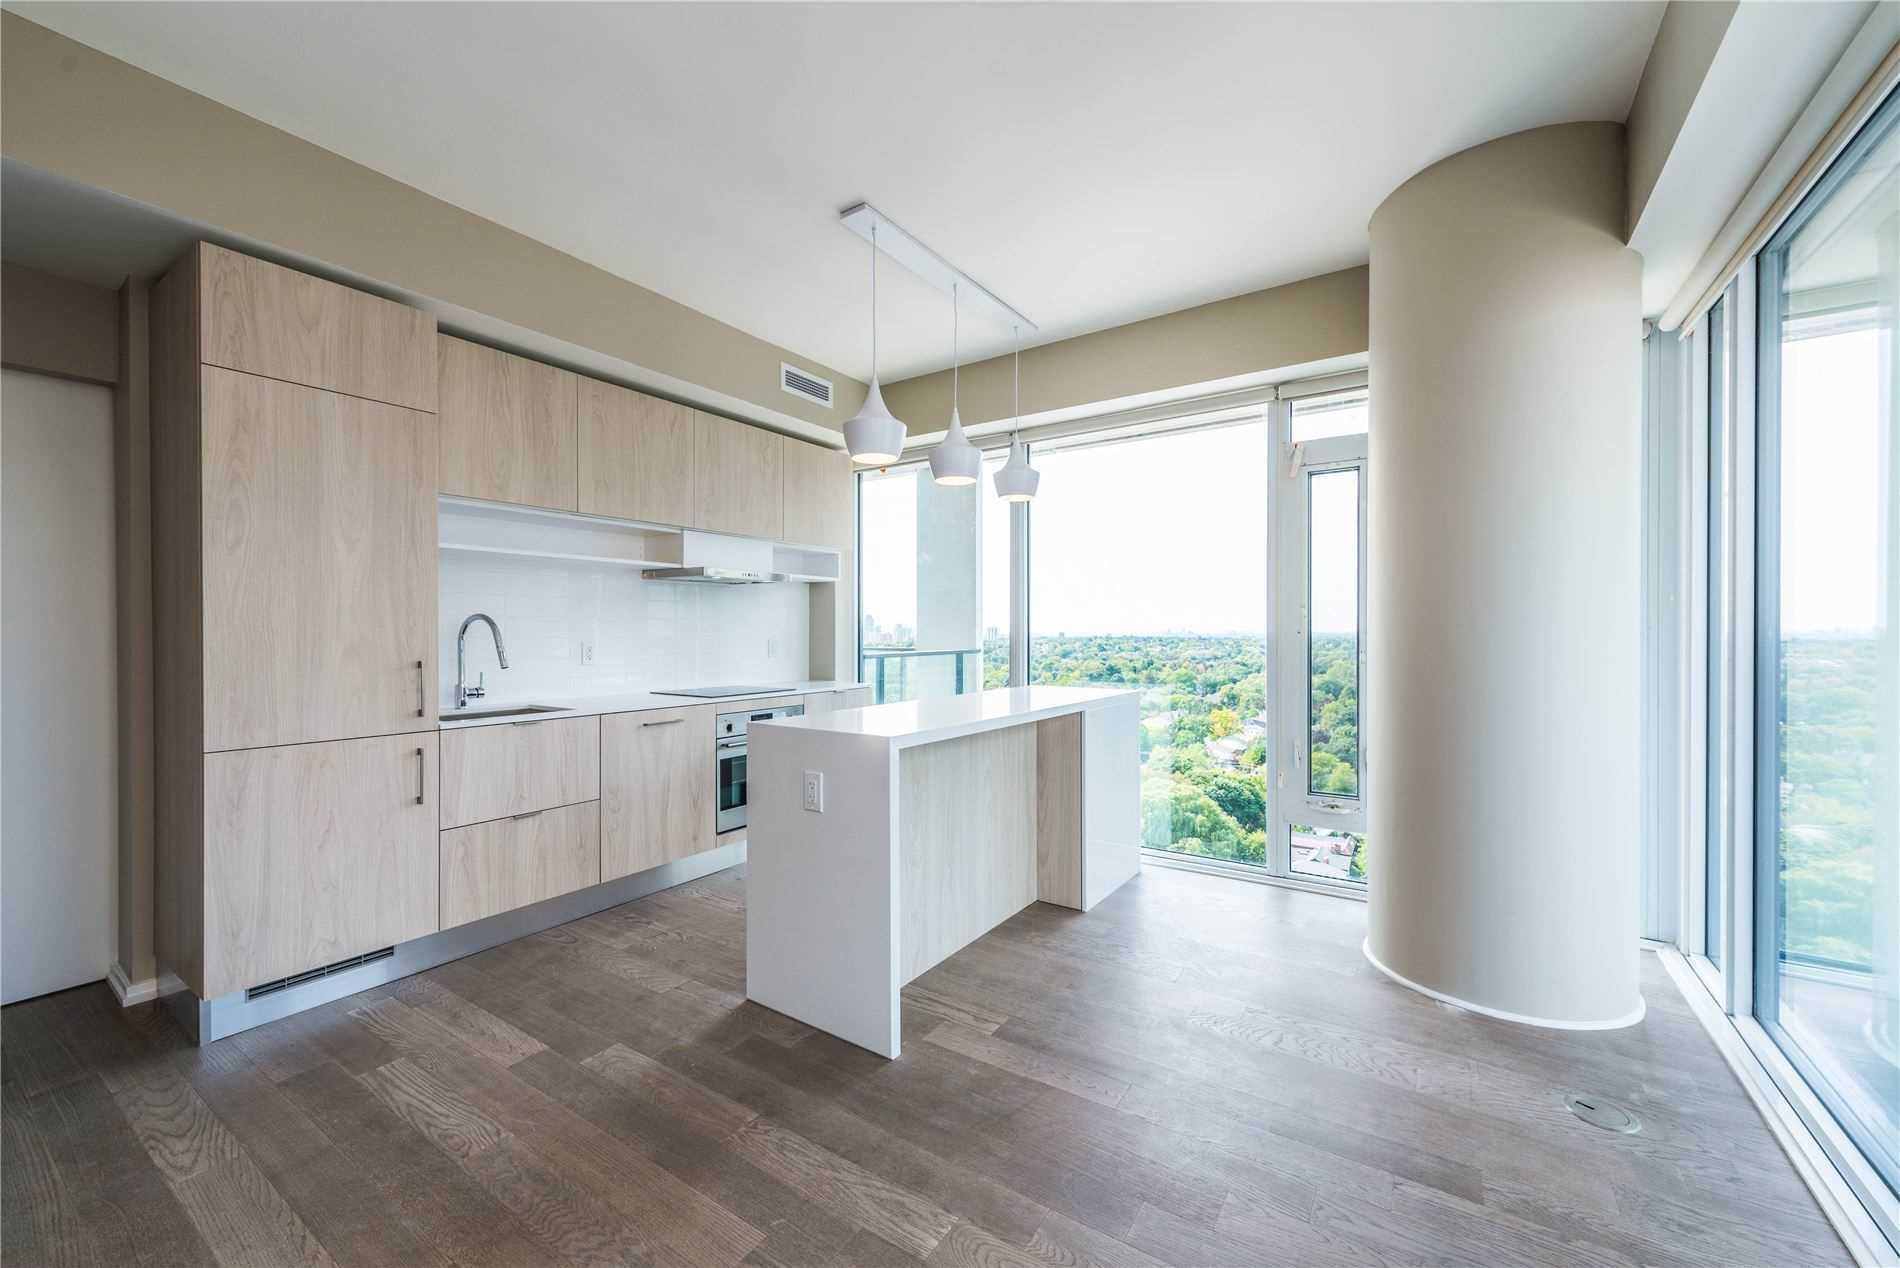 5 Soudan Ave, unit 2111 for rent in Toronto - image #1